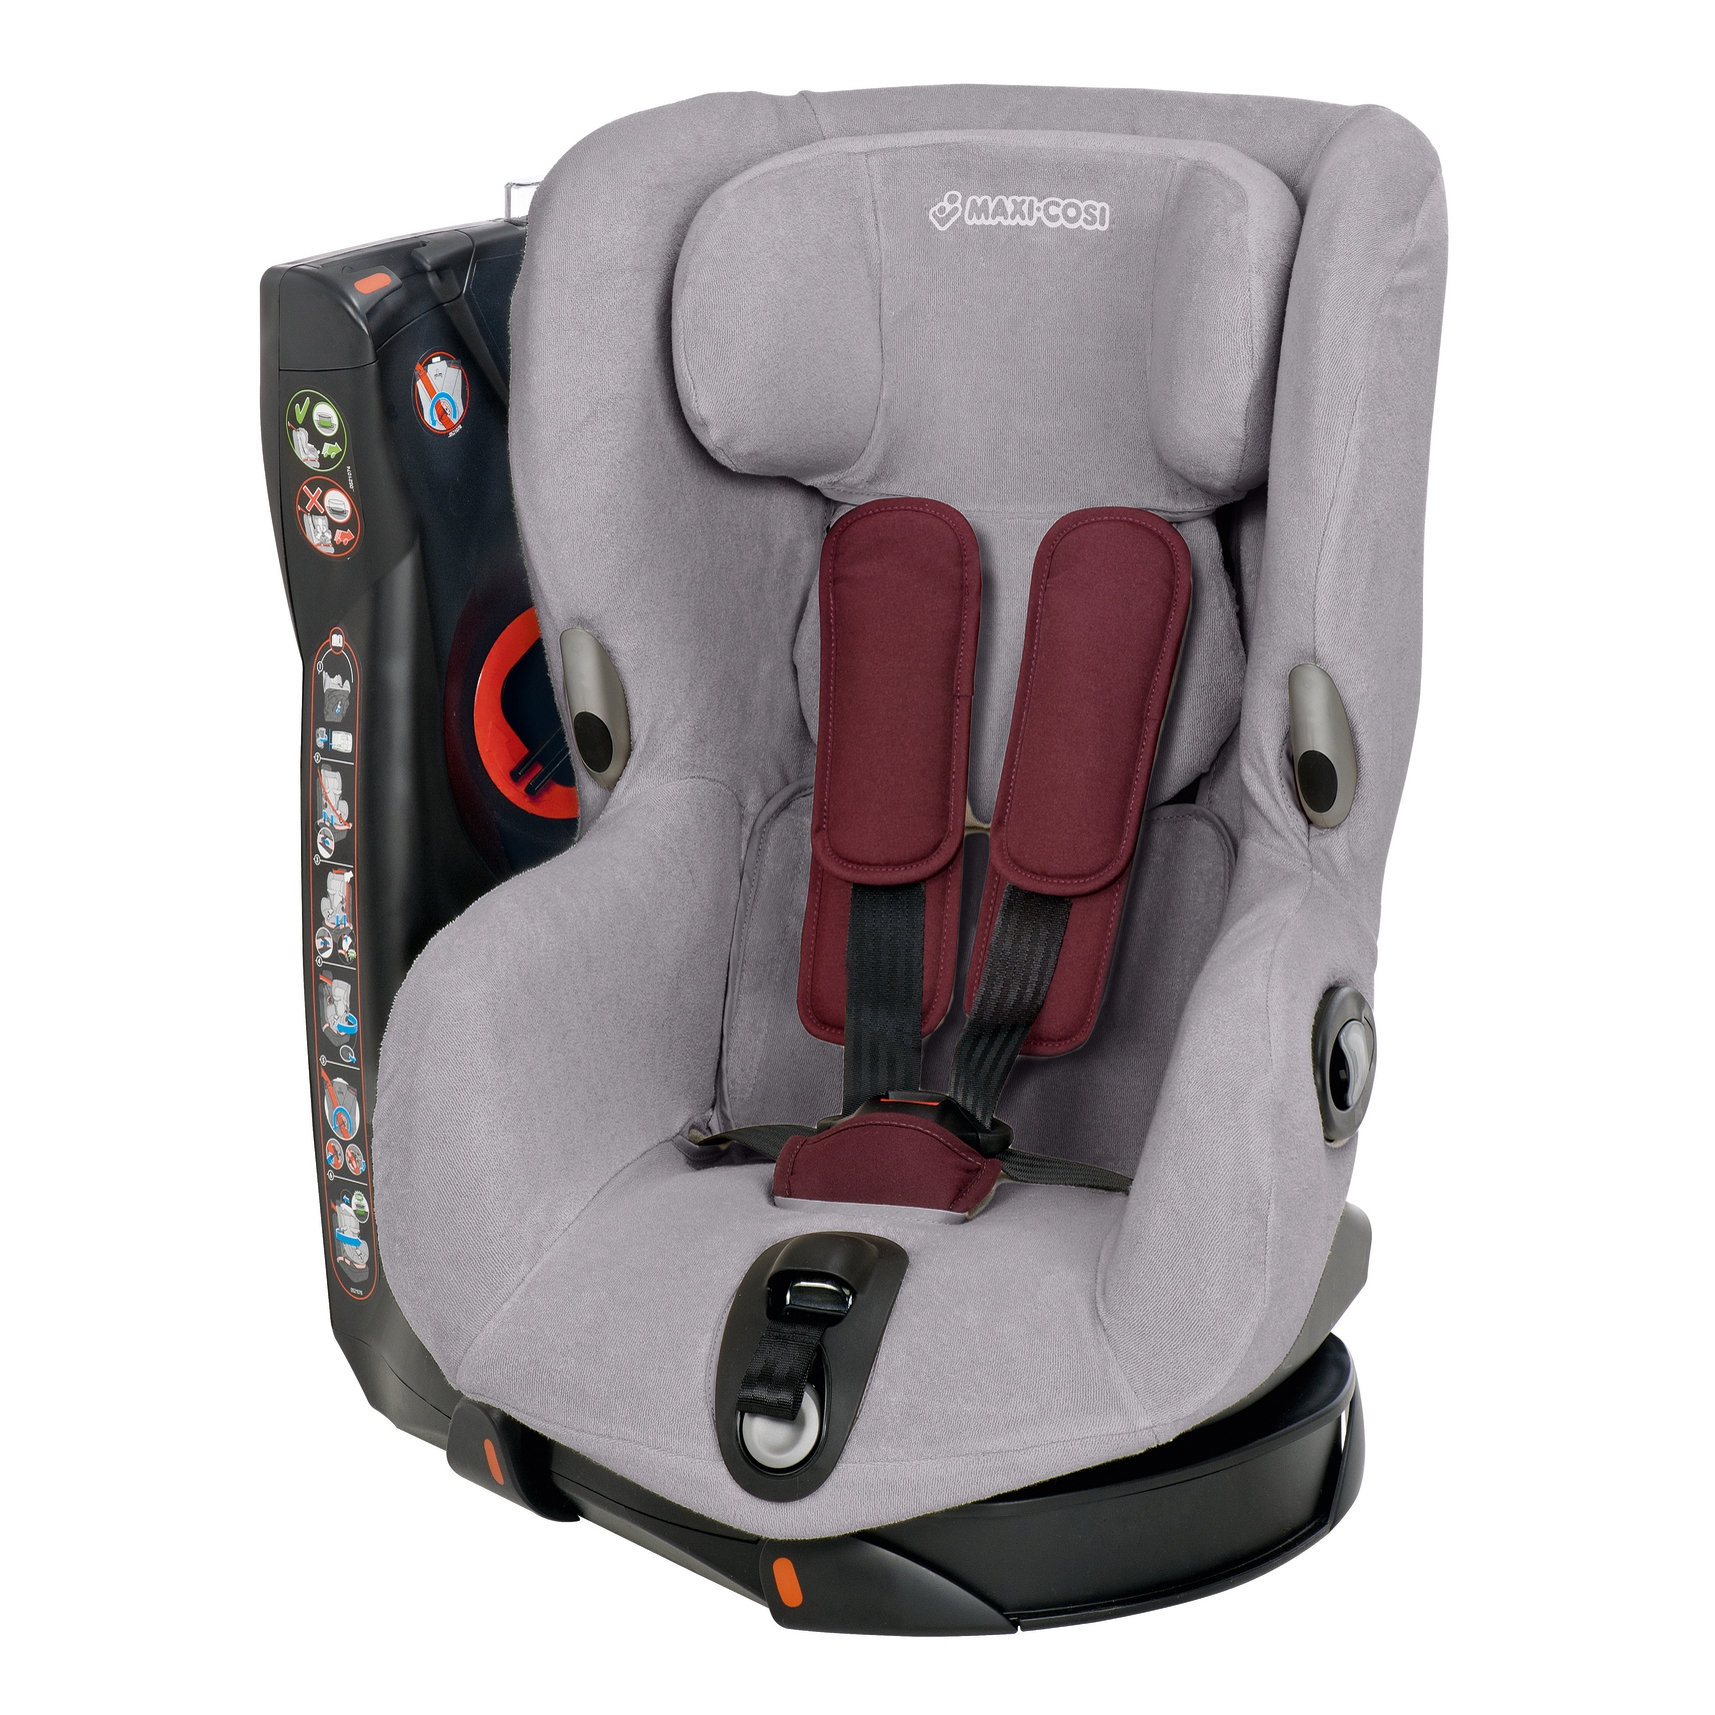 ����� ��� ���������� Maxi-Cosi Axiss Cool grey